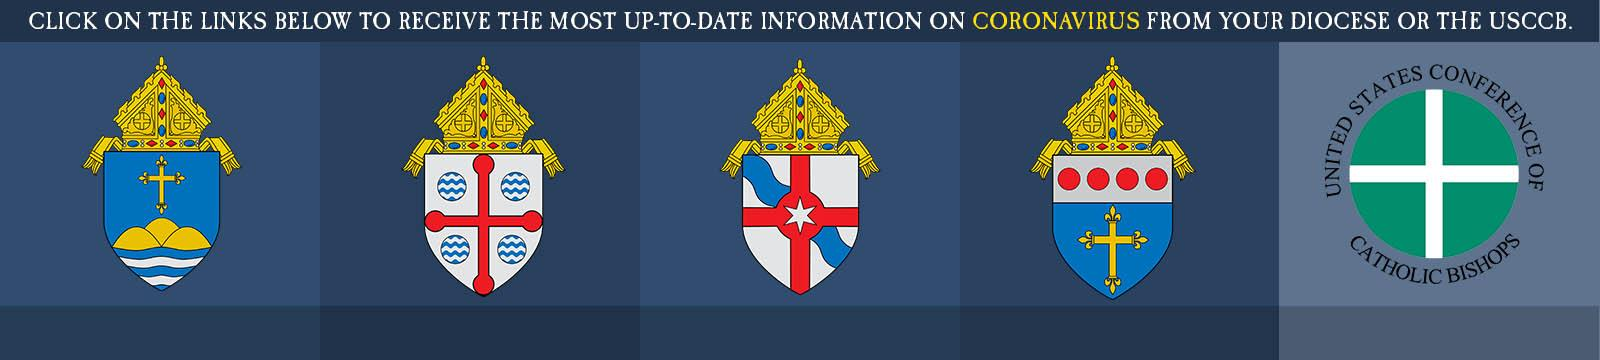 diocese logos